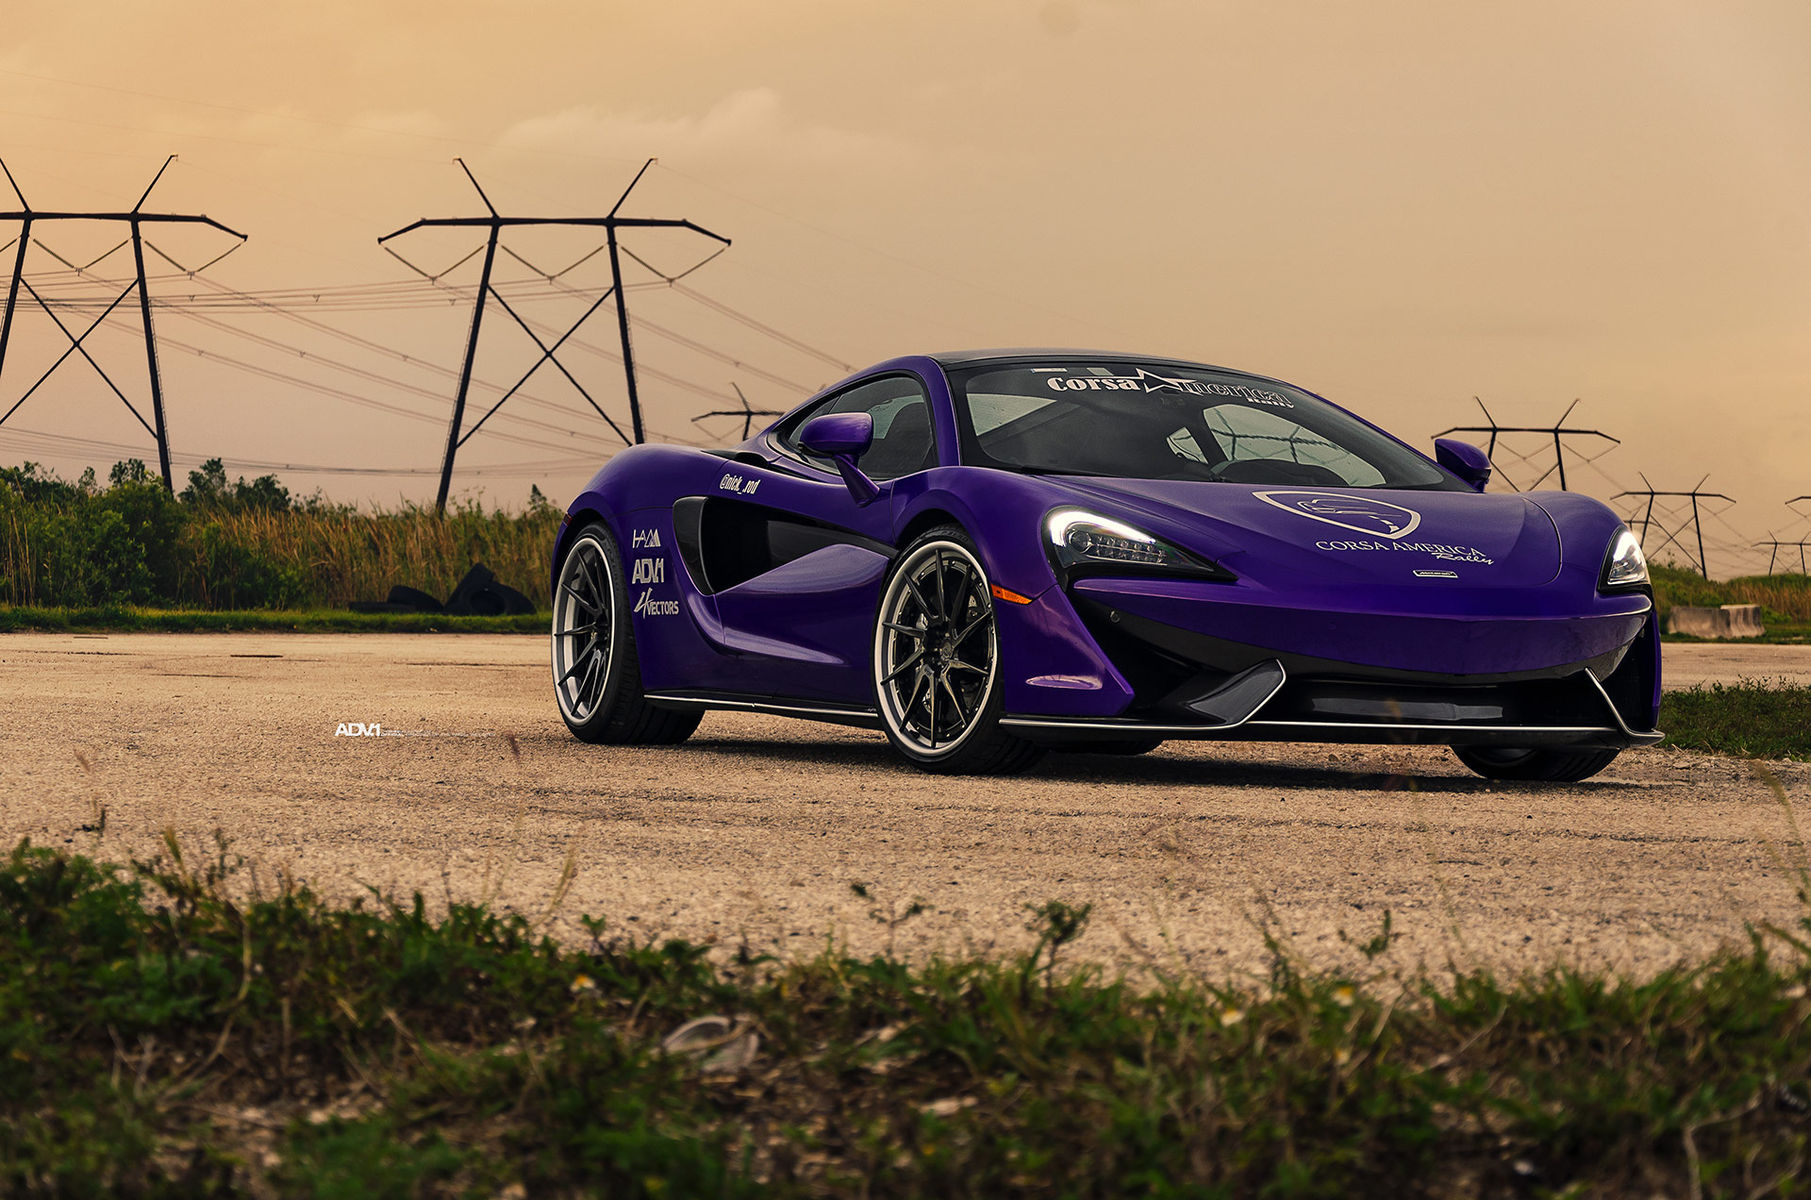 McLaren 570S | Purple McLaren 570S - ADV.1 Directional ADV10R Track Spec CS Series Wheels